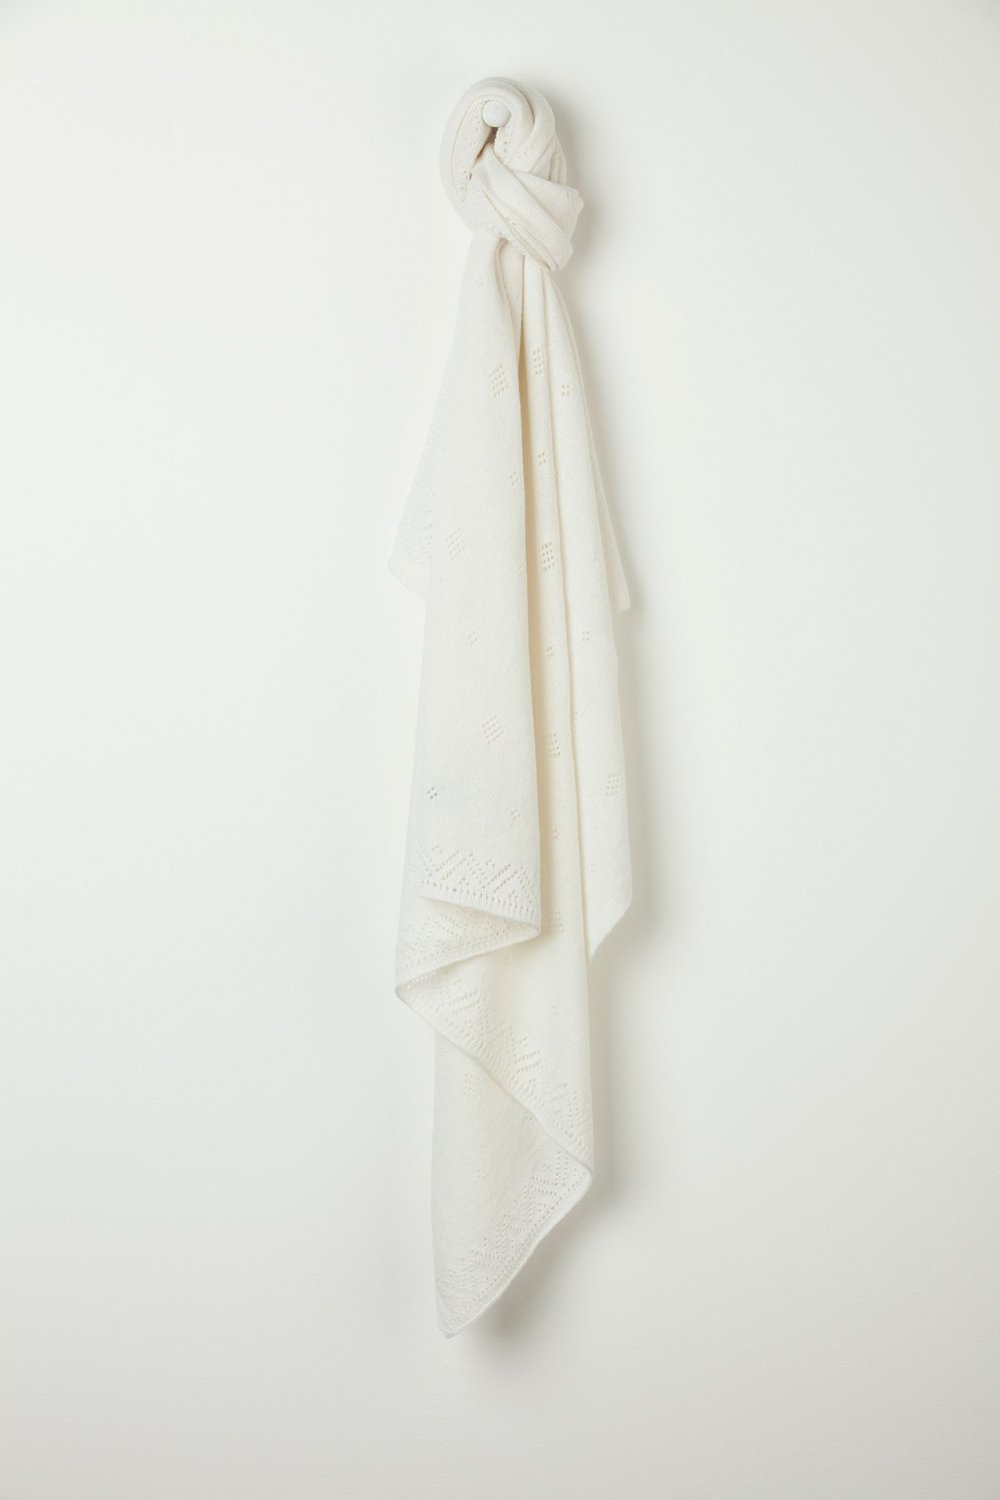 Cashmere blanket - sensory pleasure for little ones and babies alike.  Probably won't stay white for long though!